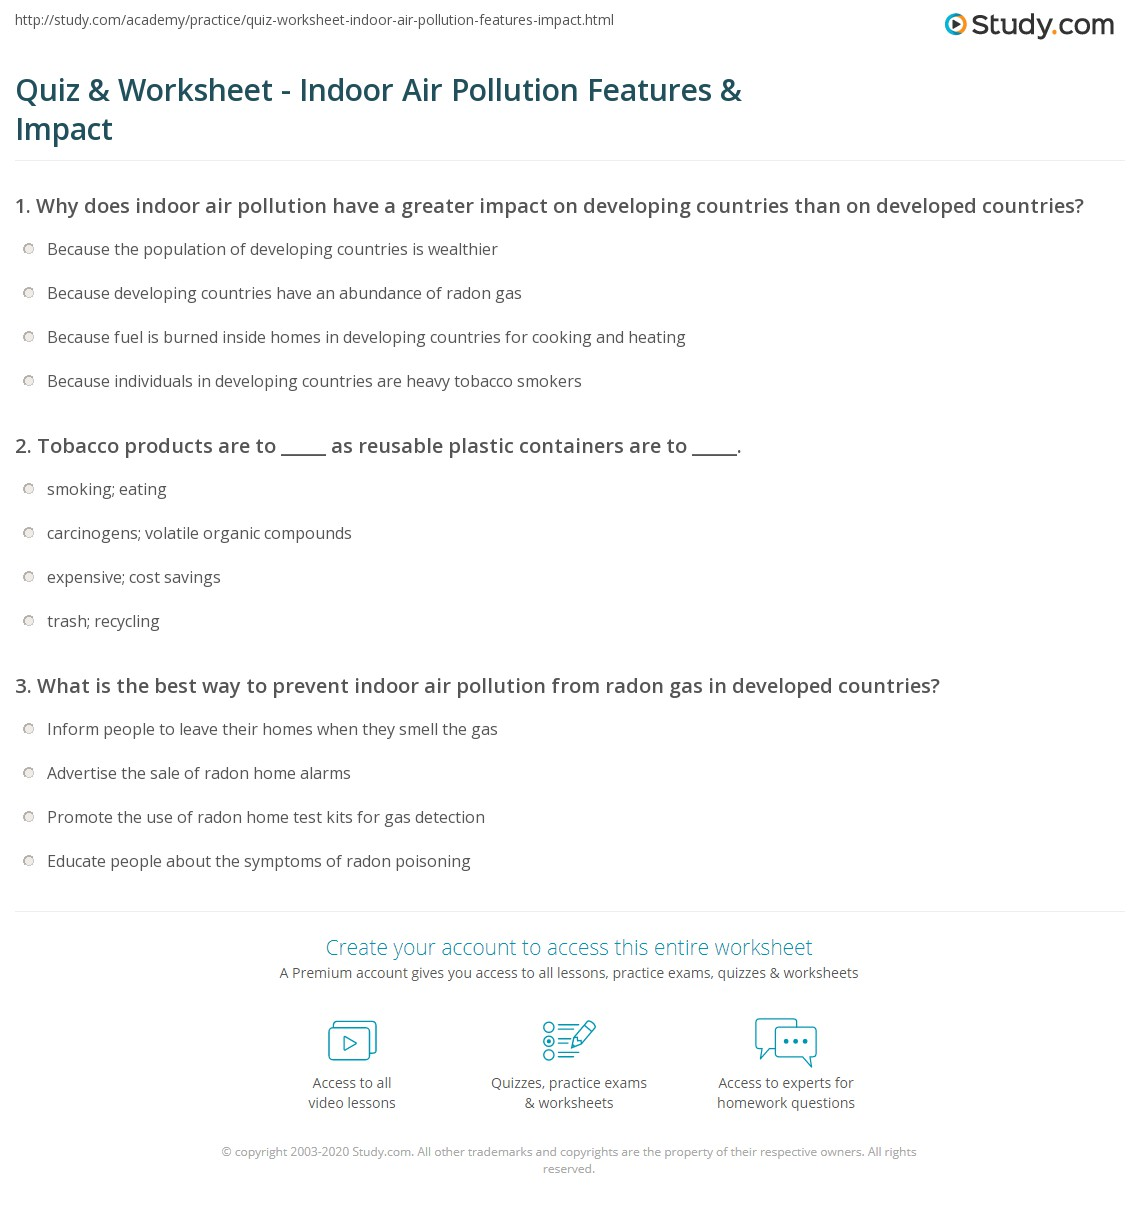 Quiz & Worksheet - Indoor Air Pollution Features & Impact | Study.com